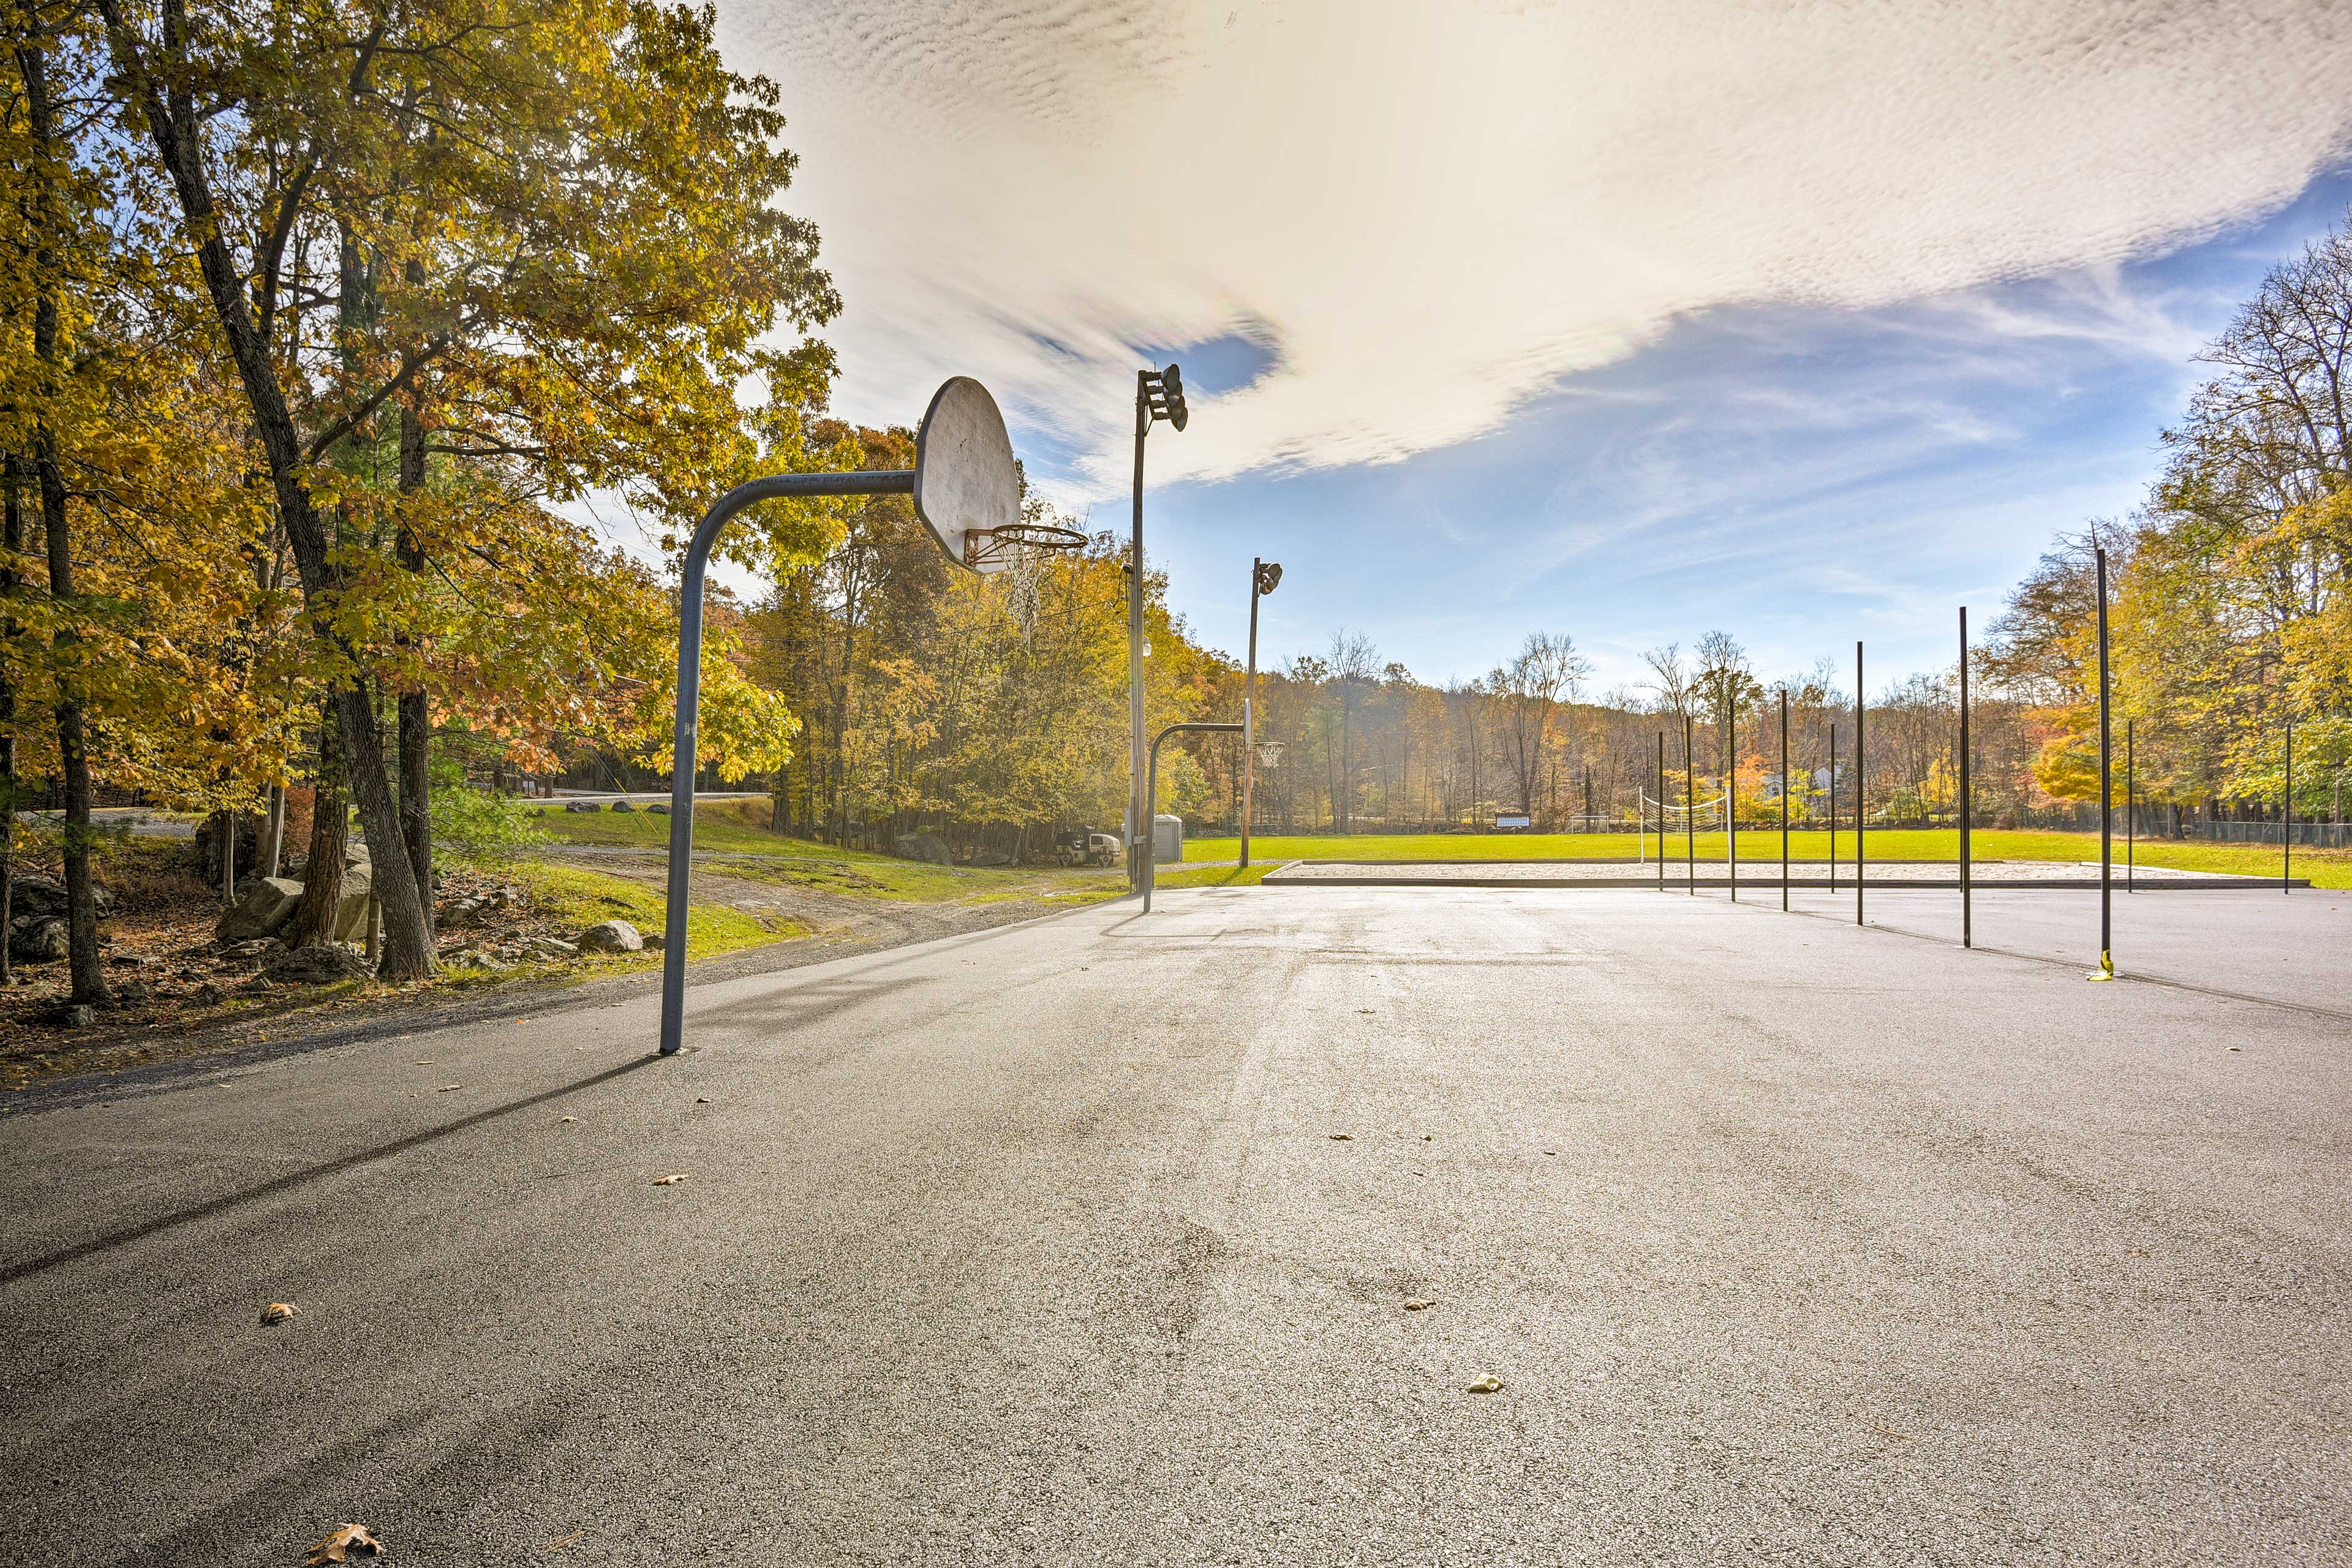 Ball out on the basketball courts near the house.